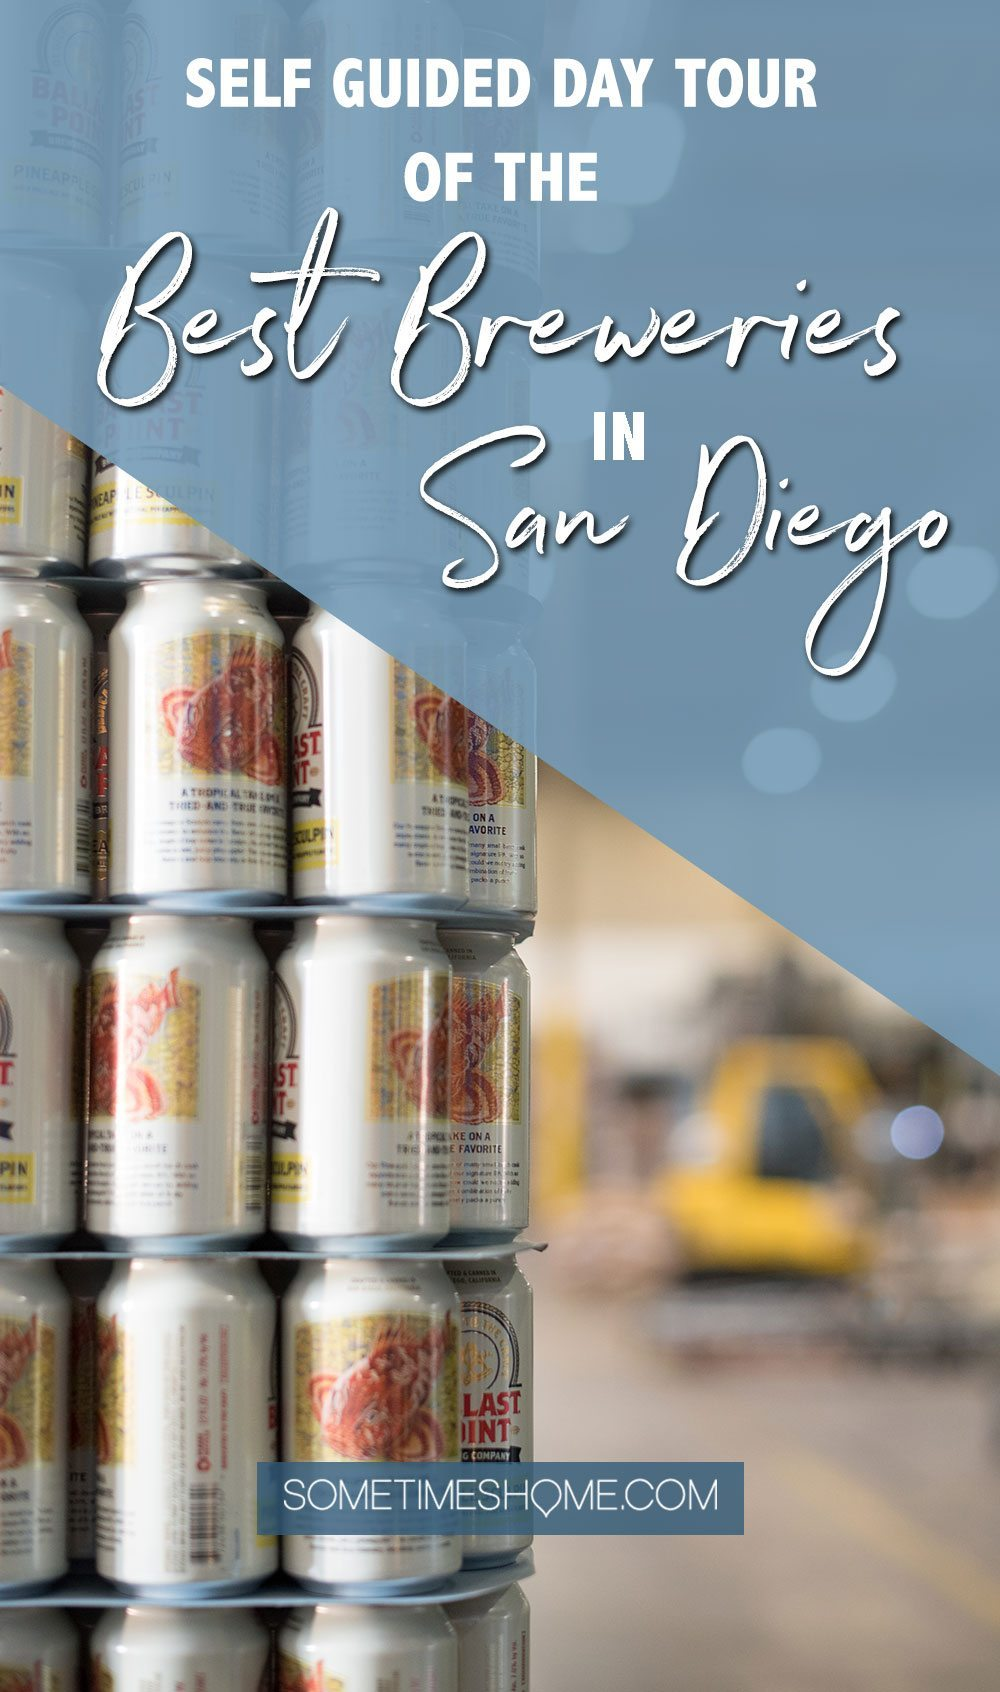 Self Guided Day Tour of the Best Breweries in San Diego on Sometimes Home travel blog.